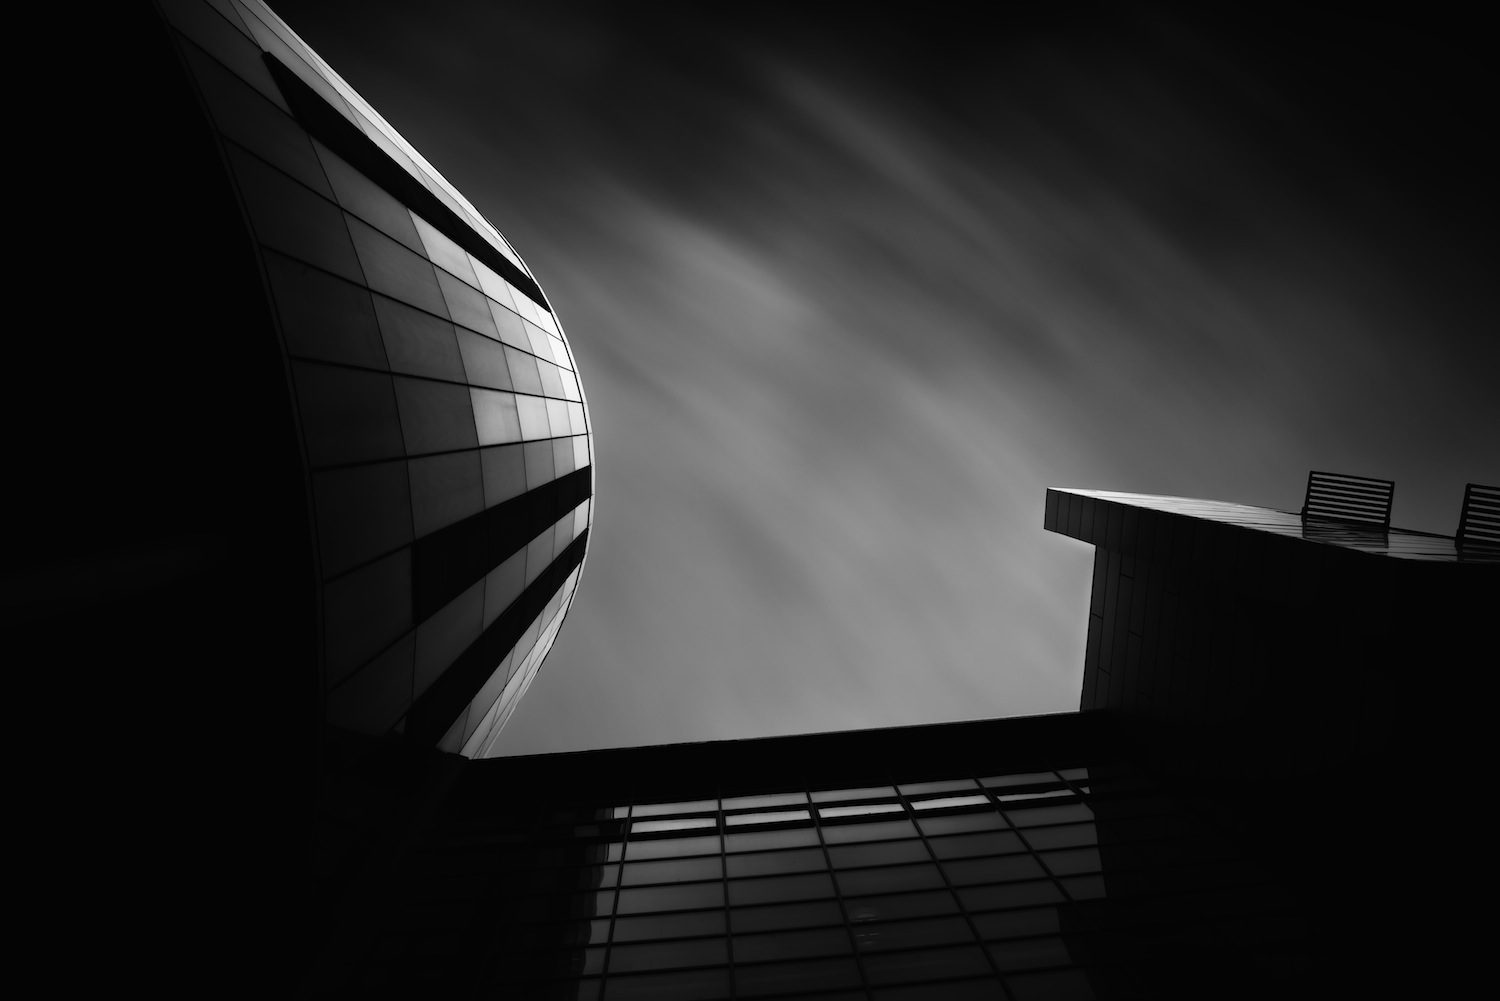 Angles & Curves - Niall Hastie